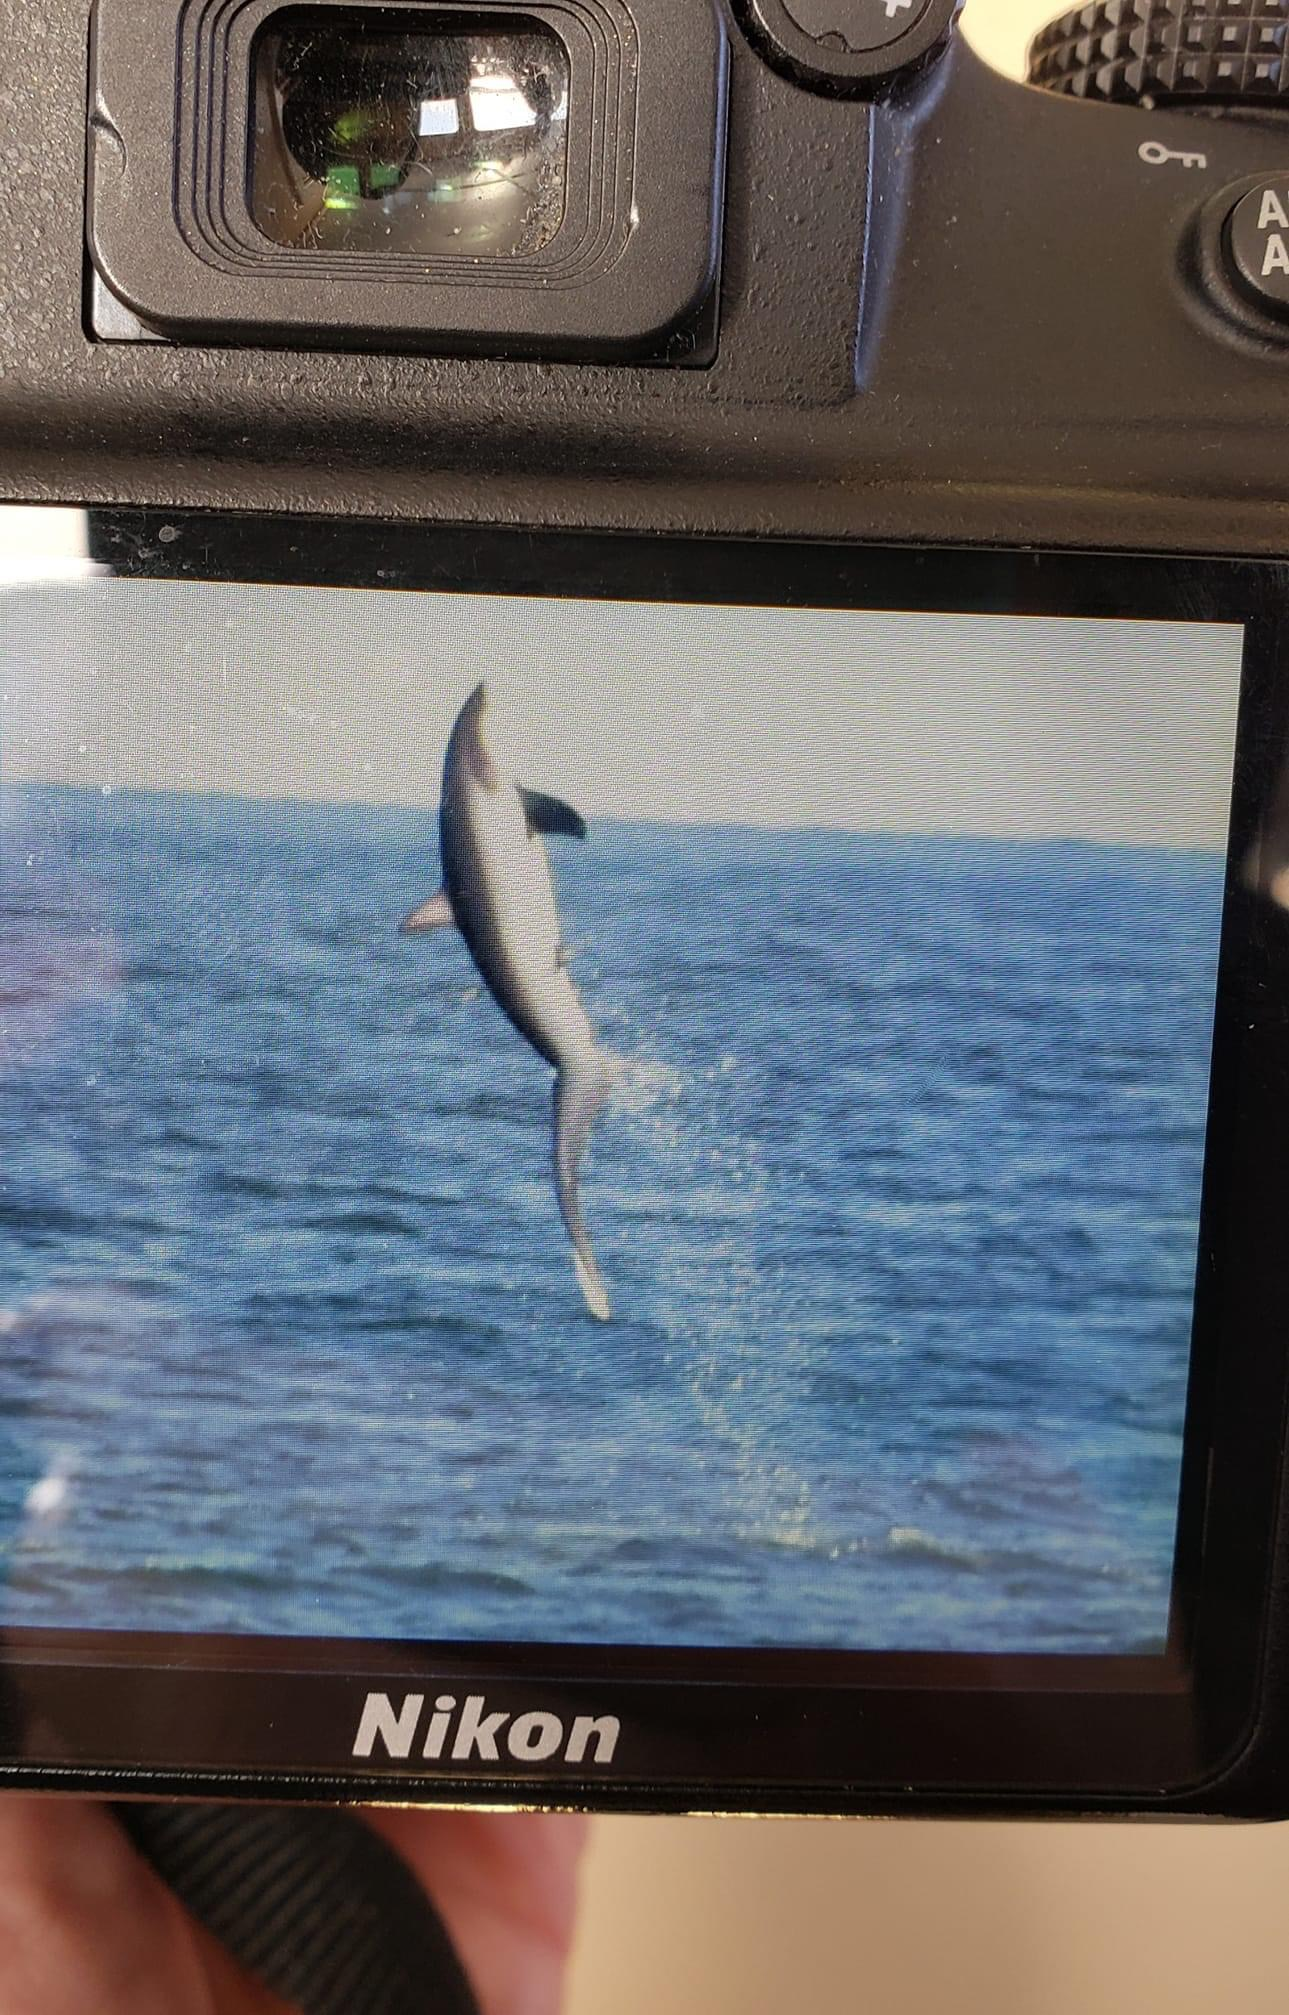 , Friday afternoon whale watching trip fan photo, Jersey Shore Whale Watch Tour 2020 Season